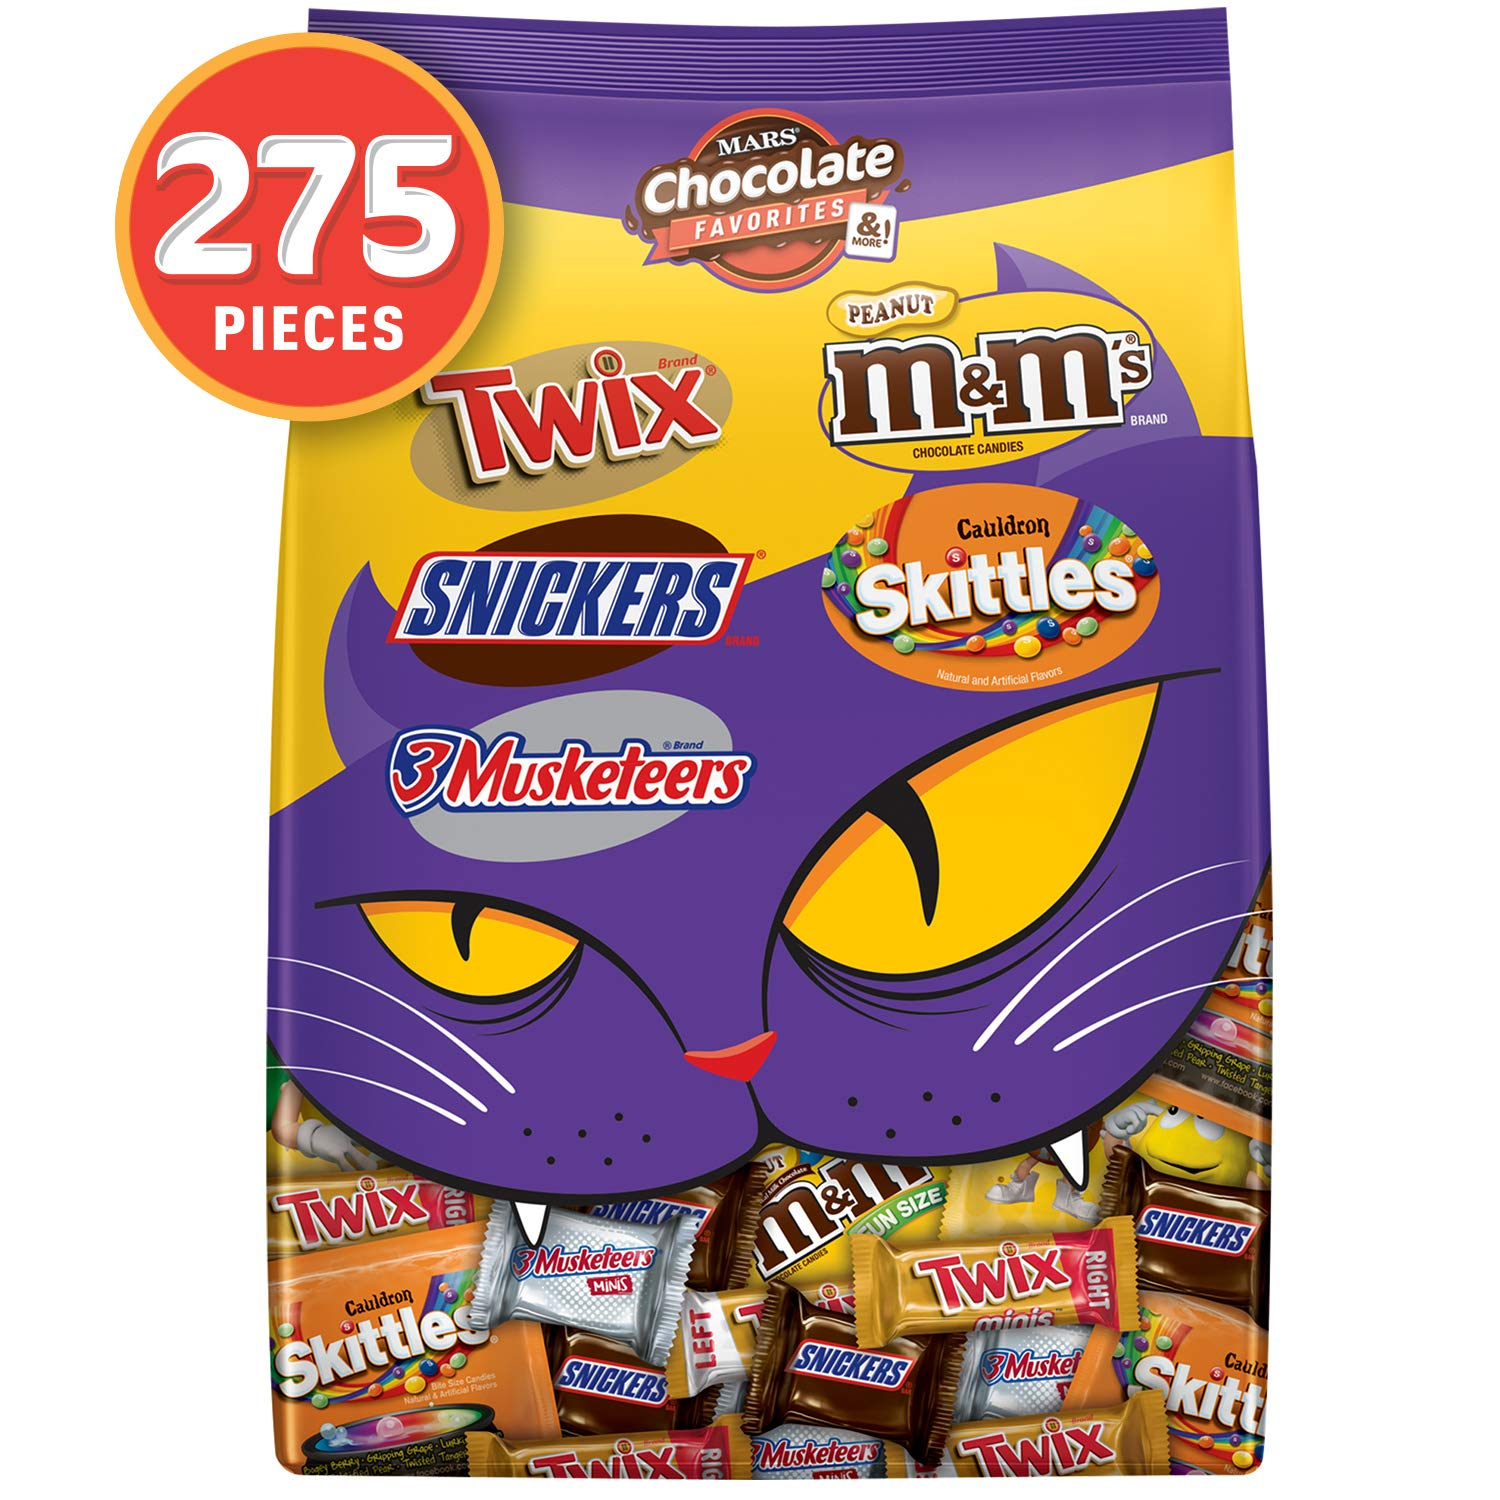 M&M'S Peanut, SNICKERS, TWIX, 3 MUSKETEERS & SKITTLES Cauldron Halloween Candy Variety Mix, 96.12-Ounce Bag. 275 Pieces by Mars